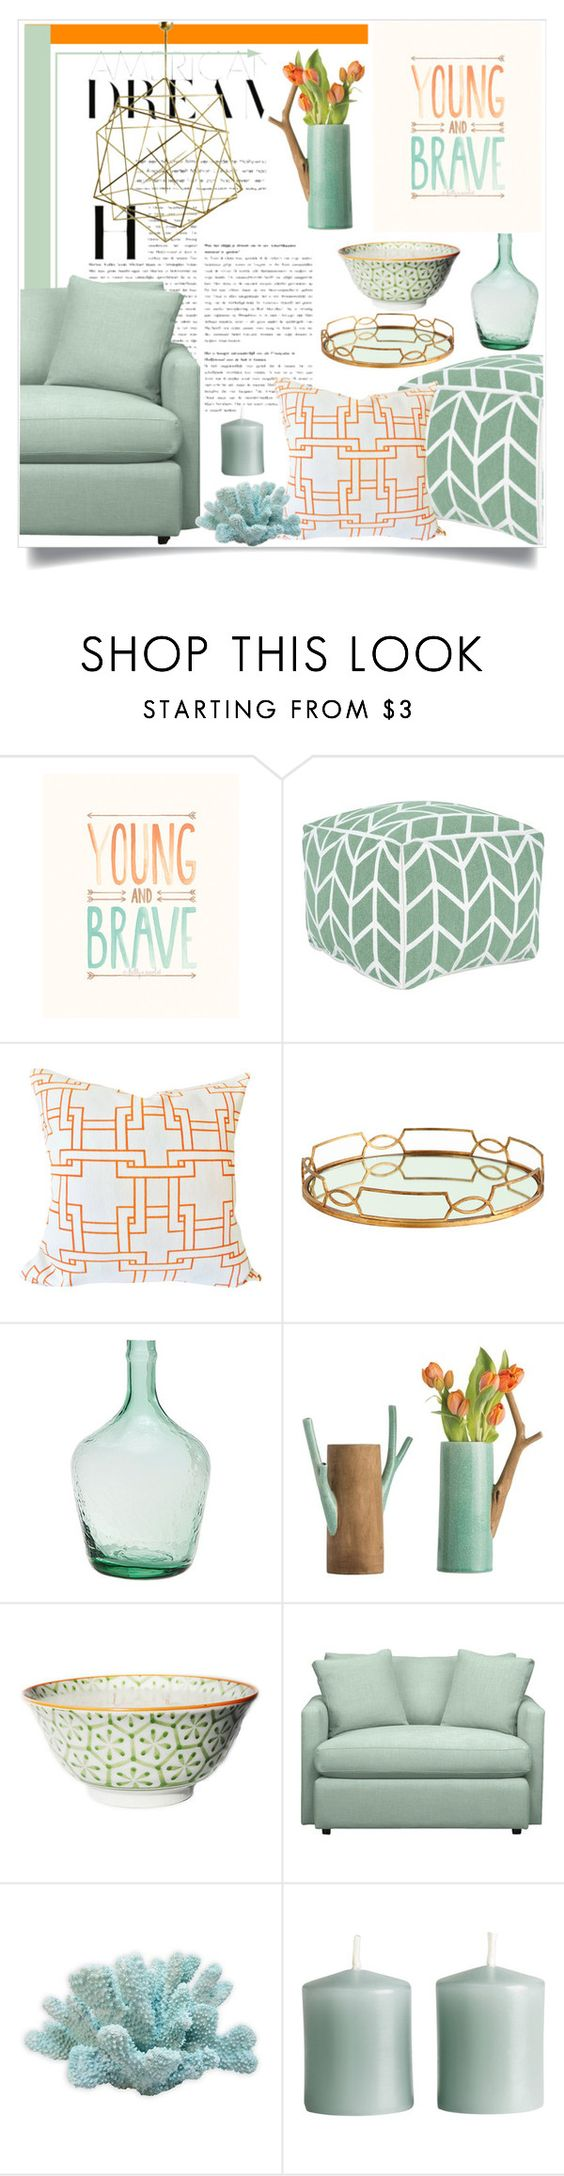 Threshold home decor shop for threshold home decor on polyvore - Interior Decorating Young And Brave By Southernpearldesigns Liked On Polyvore Featuring Threshold